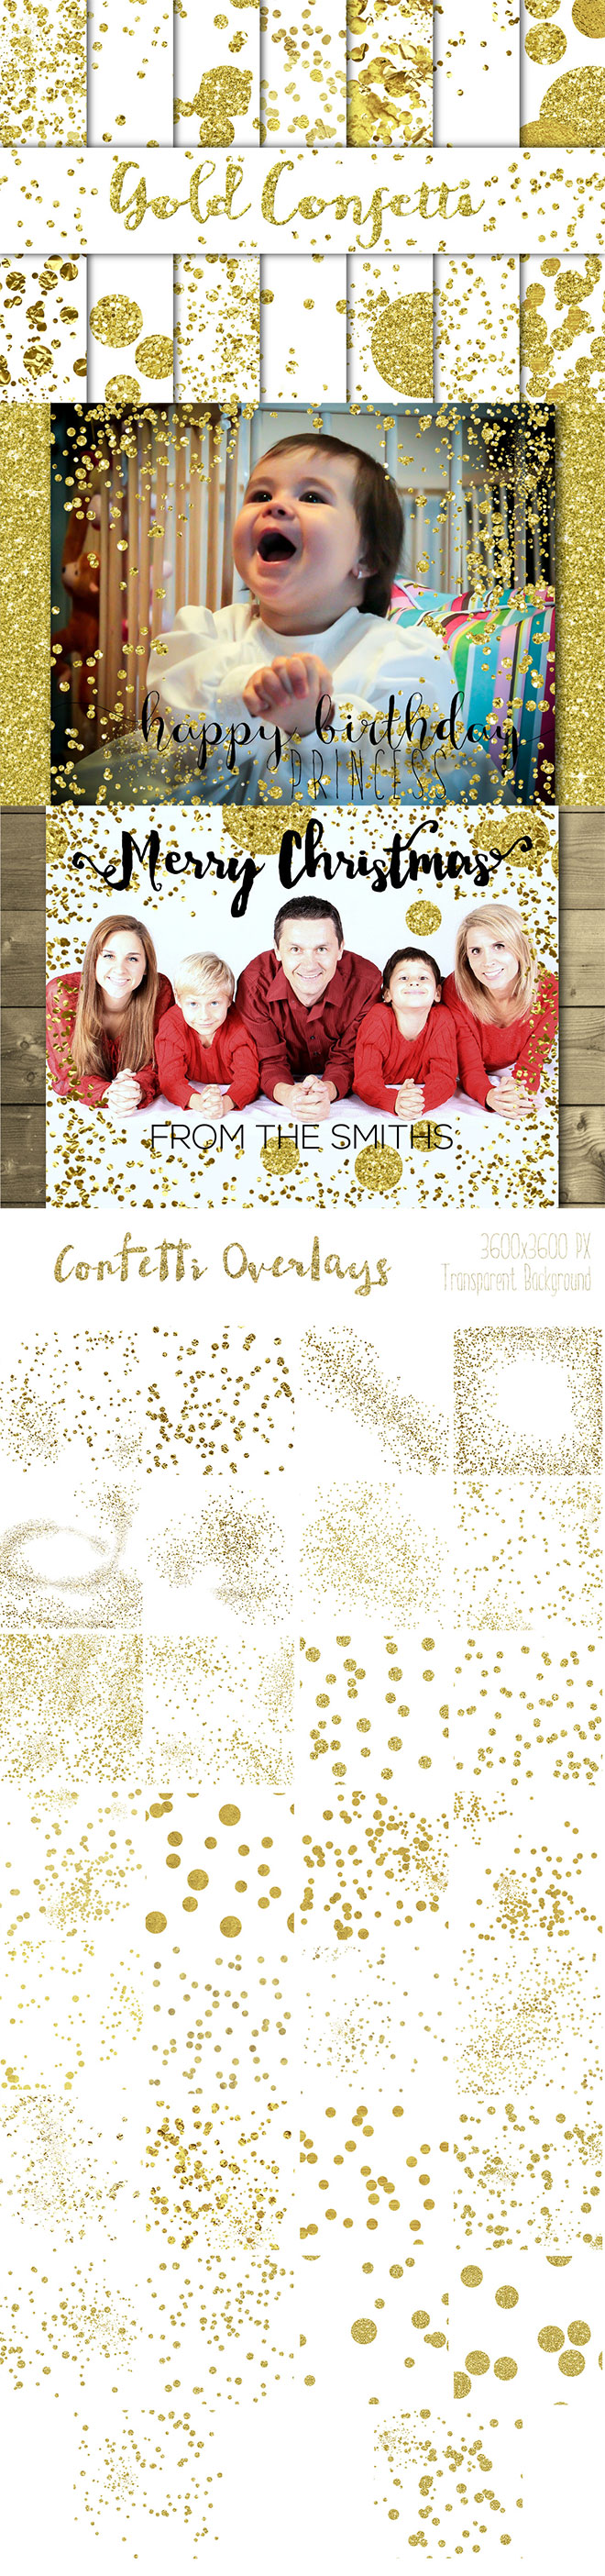 Gold Confetti Backgrounds and Overlays